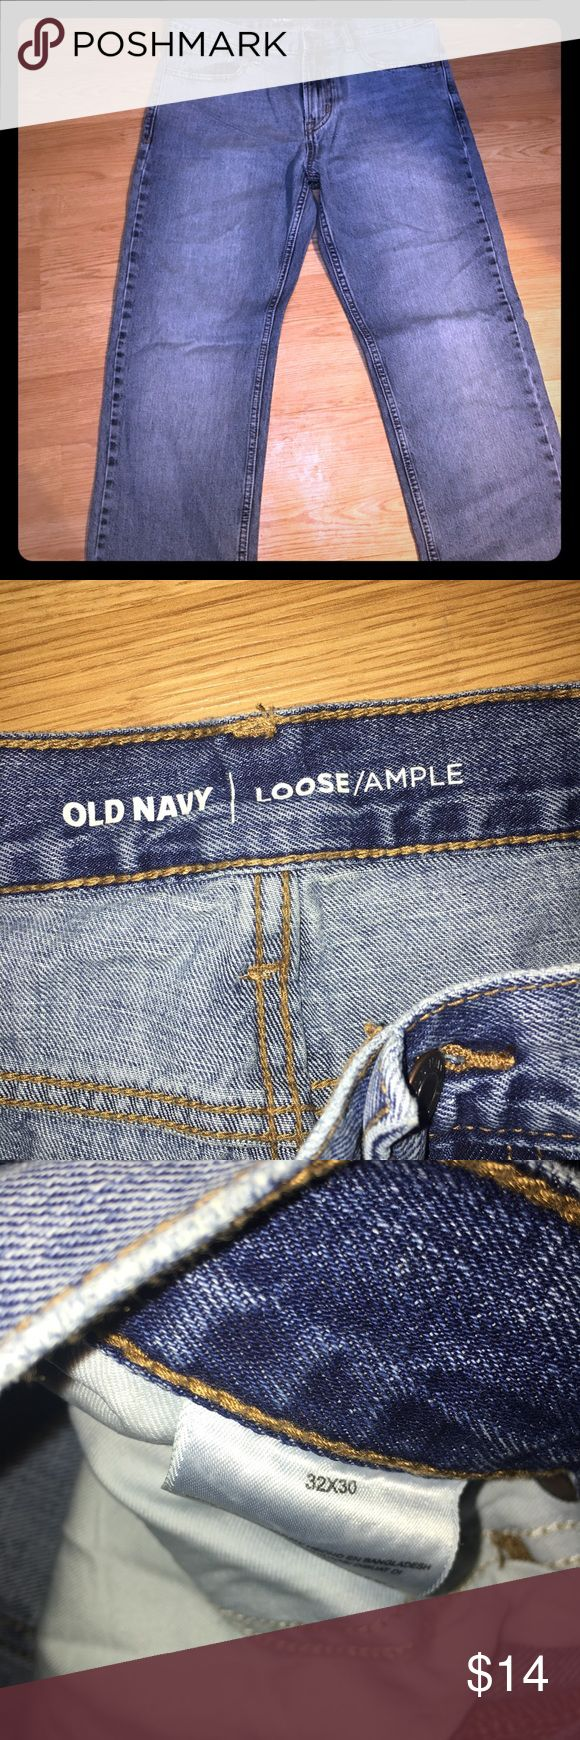 Old Navy loose fit jeans In excellent condition! Old Navy Jeans Relaxed